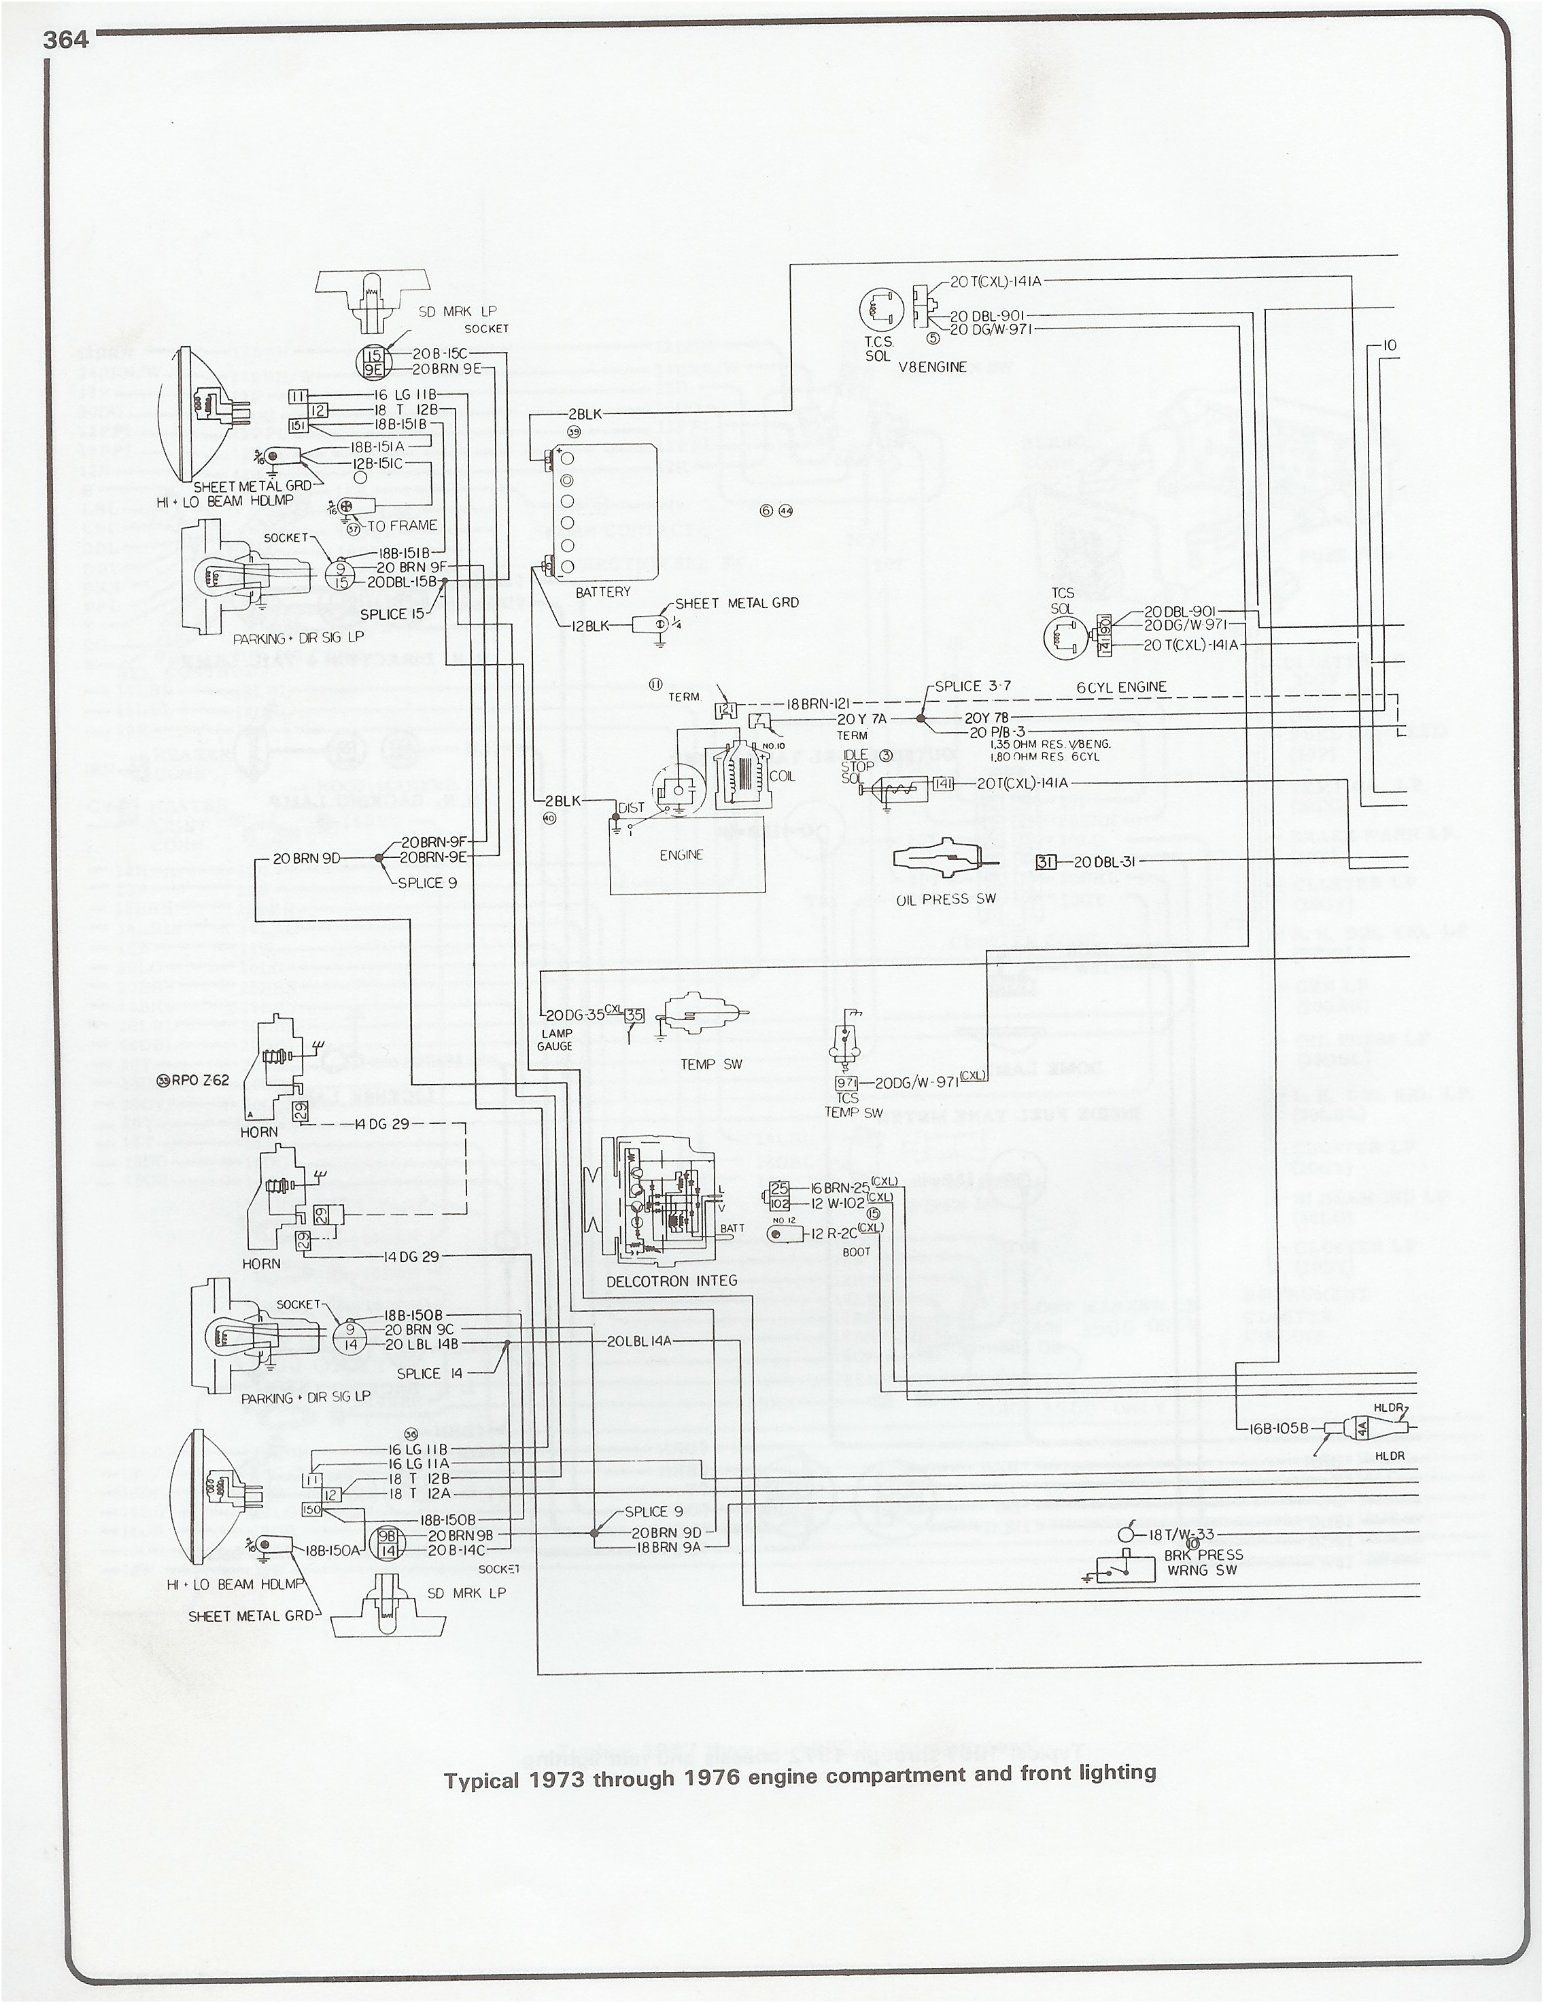 medium resolution of chevy truck rear axle diagram on chevy 350 oil pressure valve chevy silverado ac system diagram